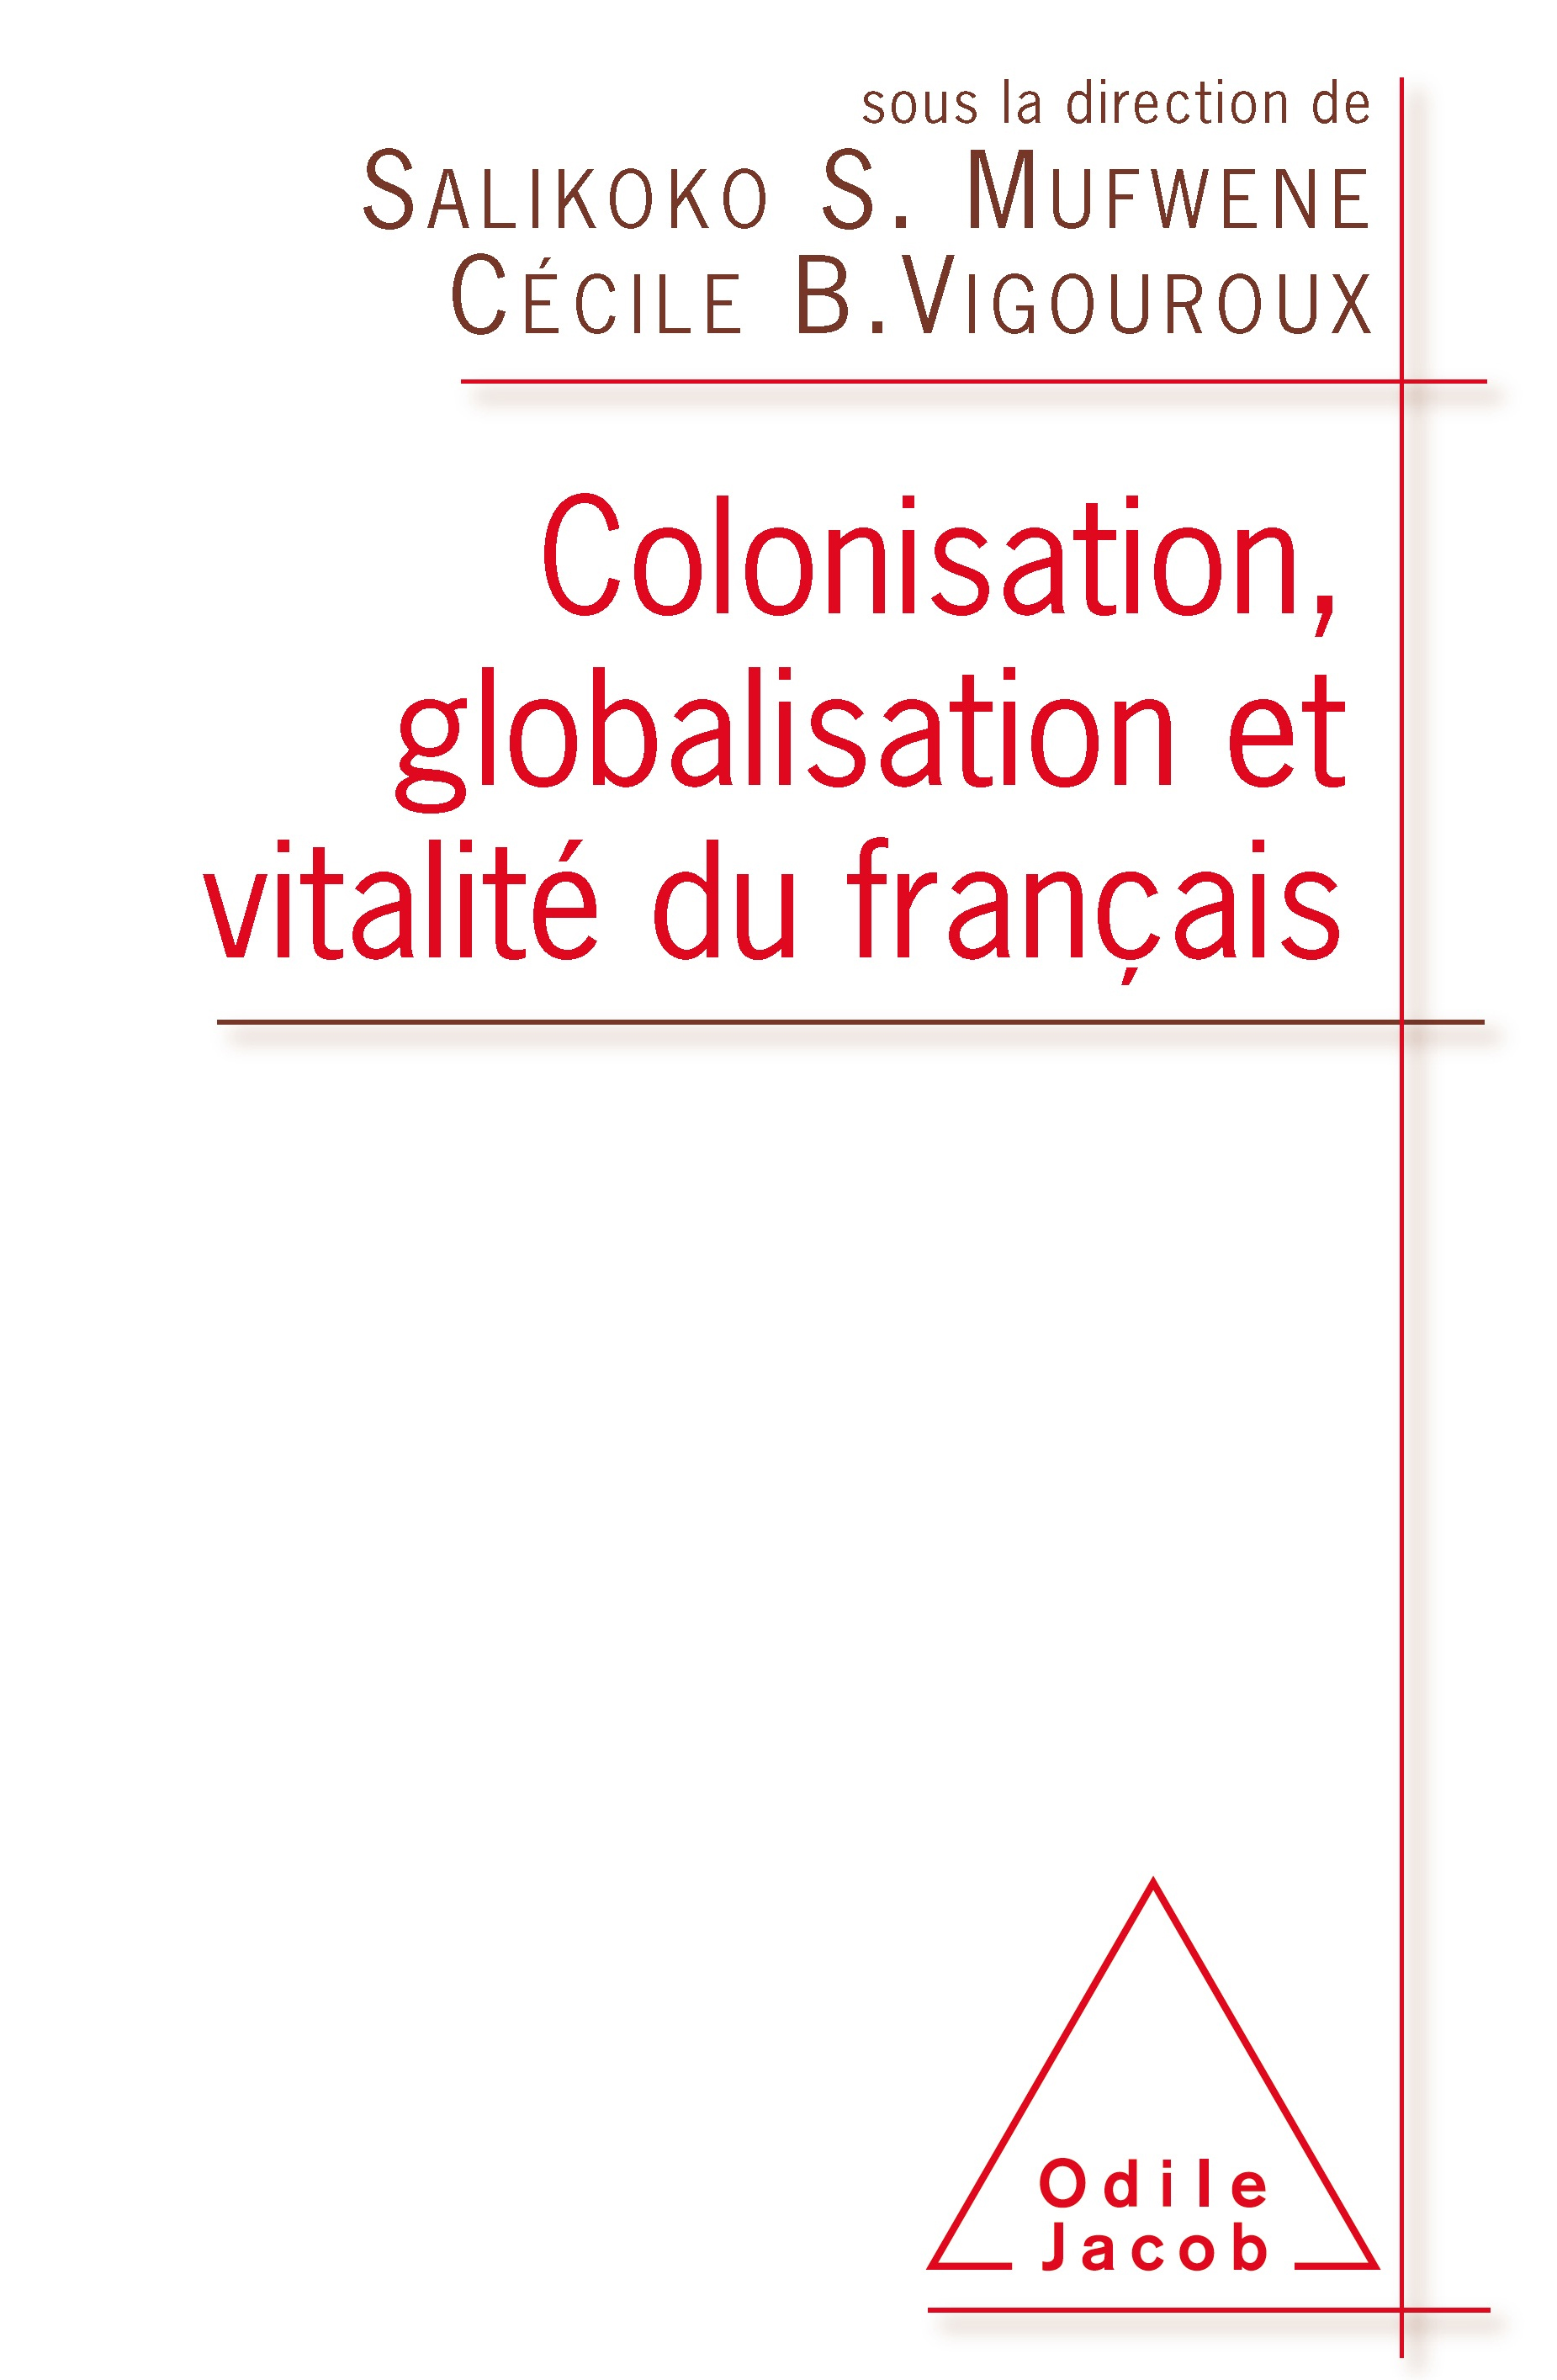 Colonisation, Globalisation and the Dynamism of the French Language